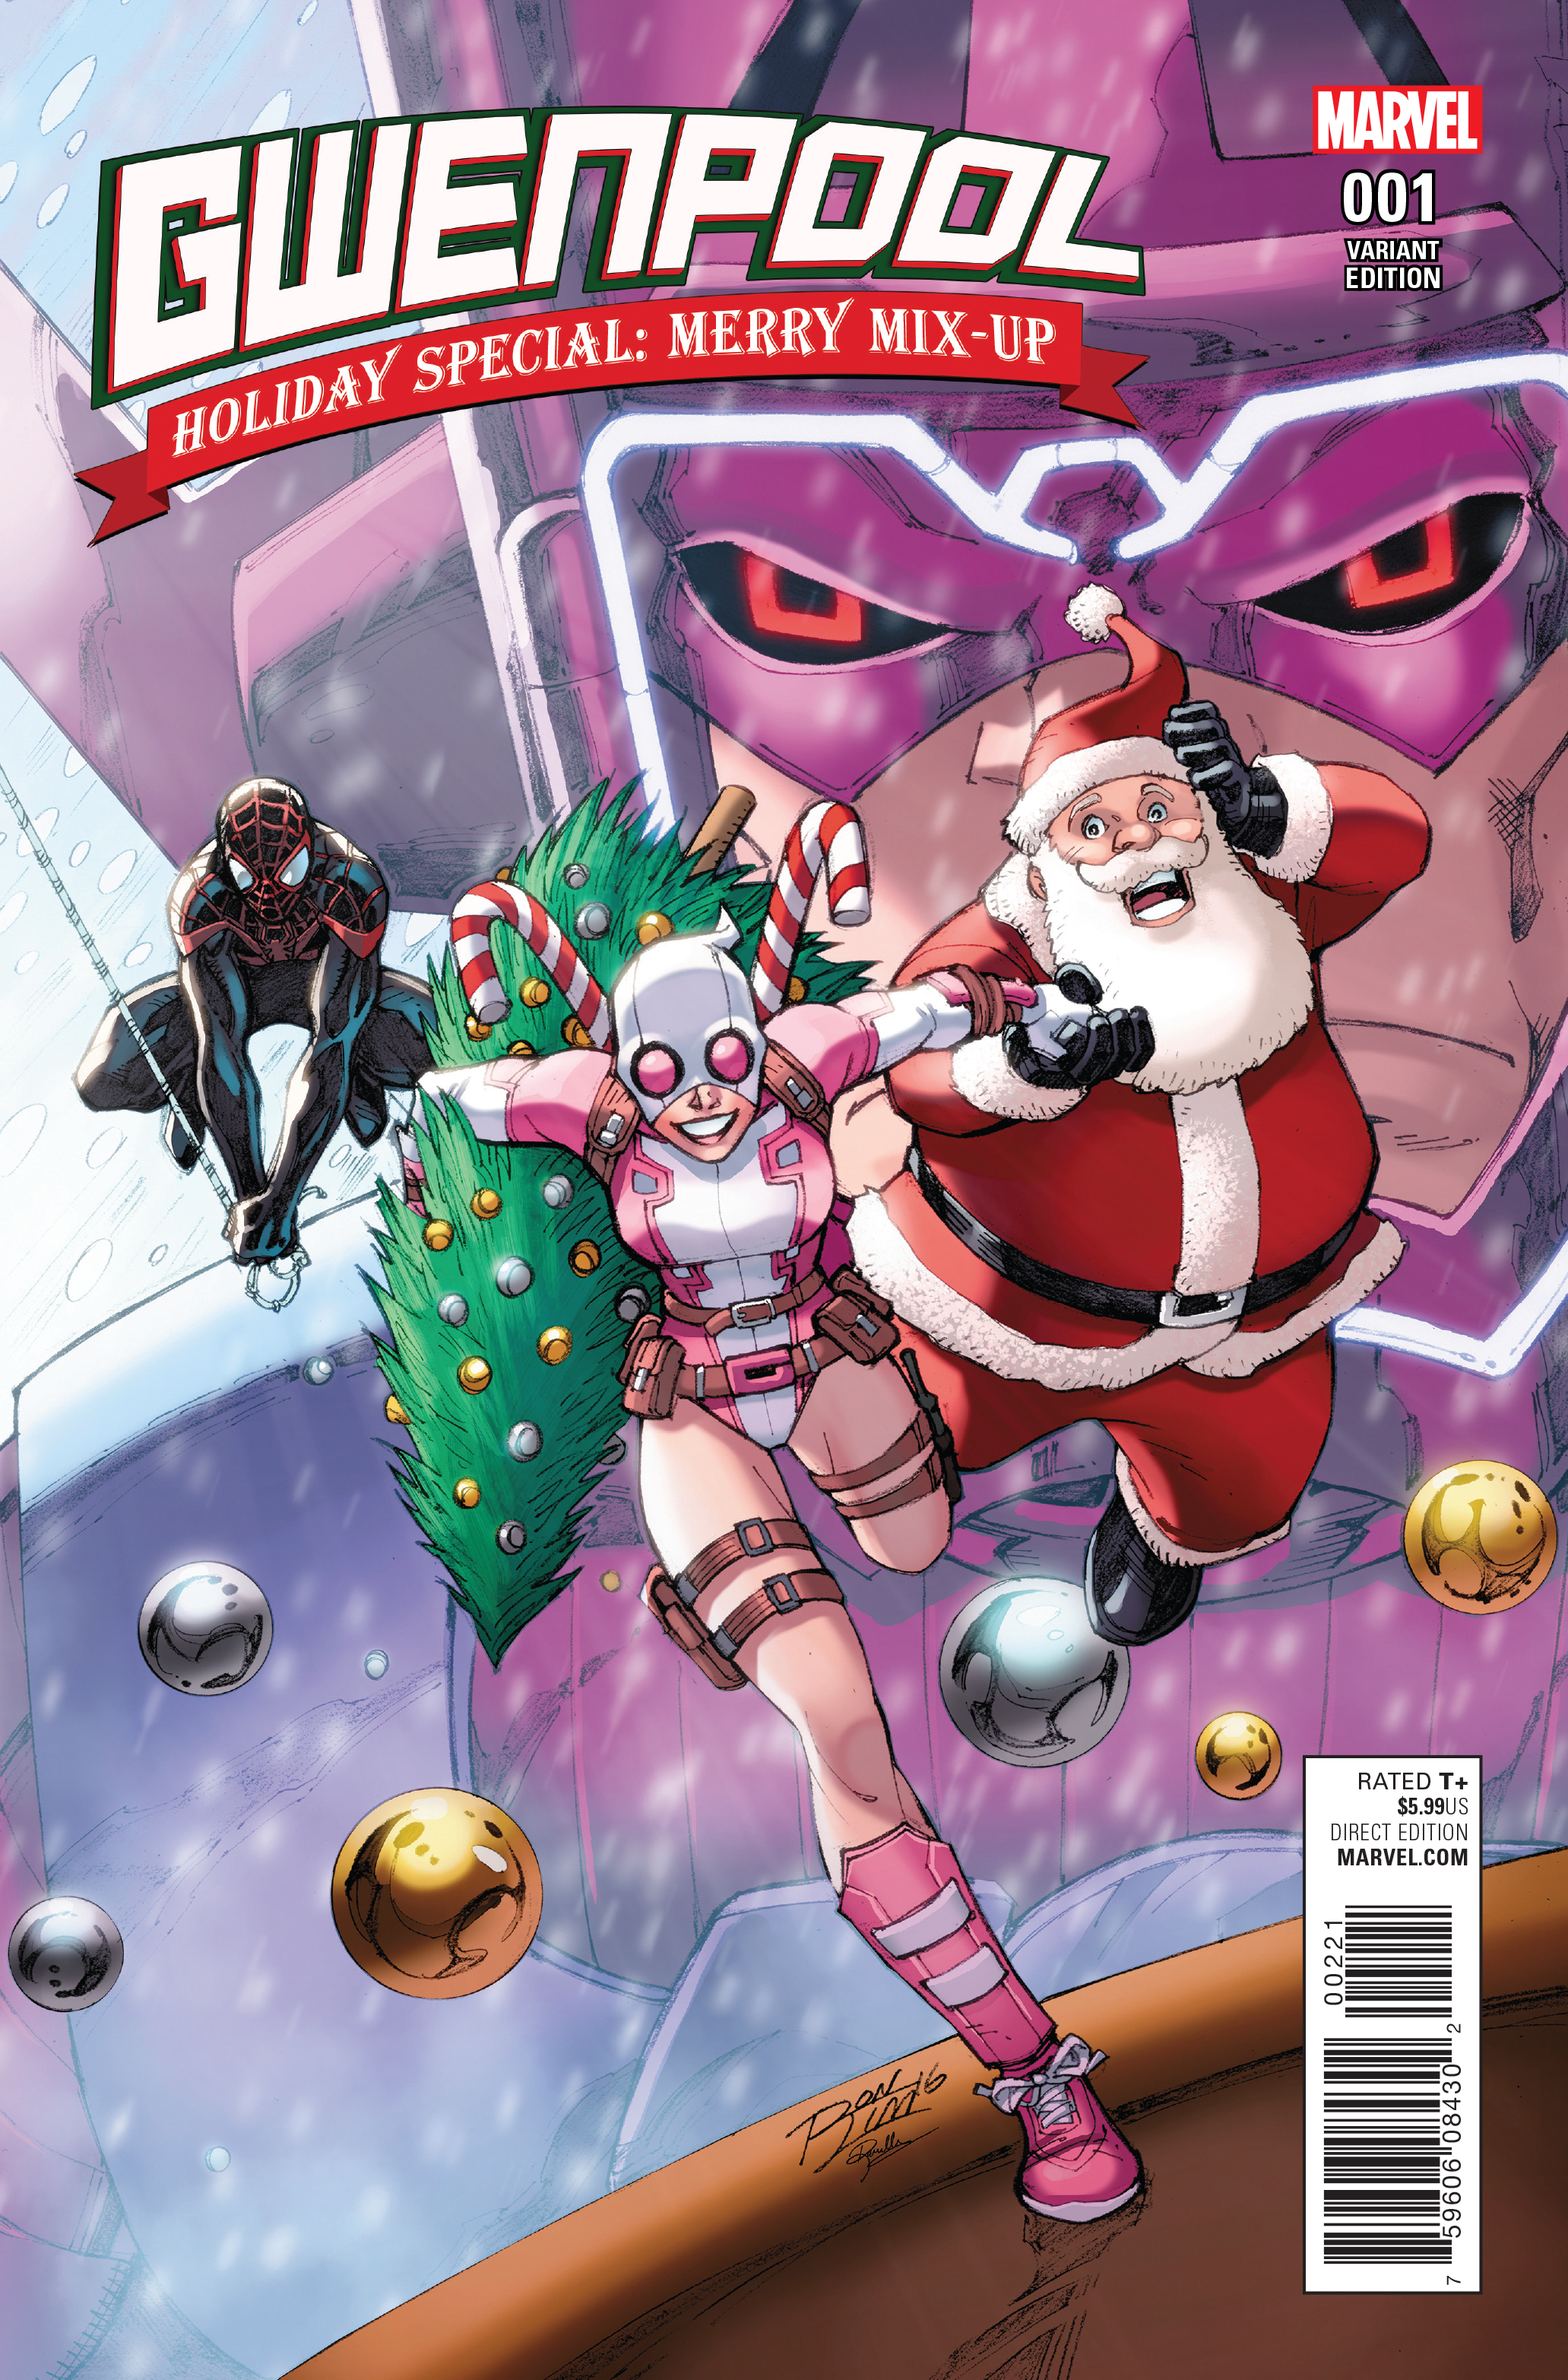 Gwenpool: Holiday Special: Merry Mix-Up Spider-man